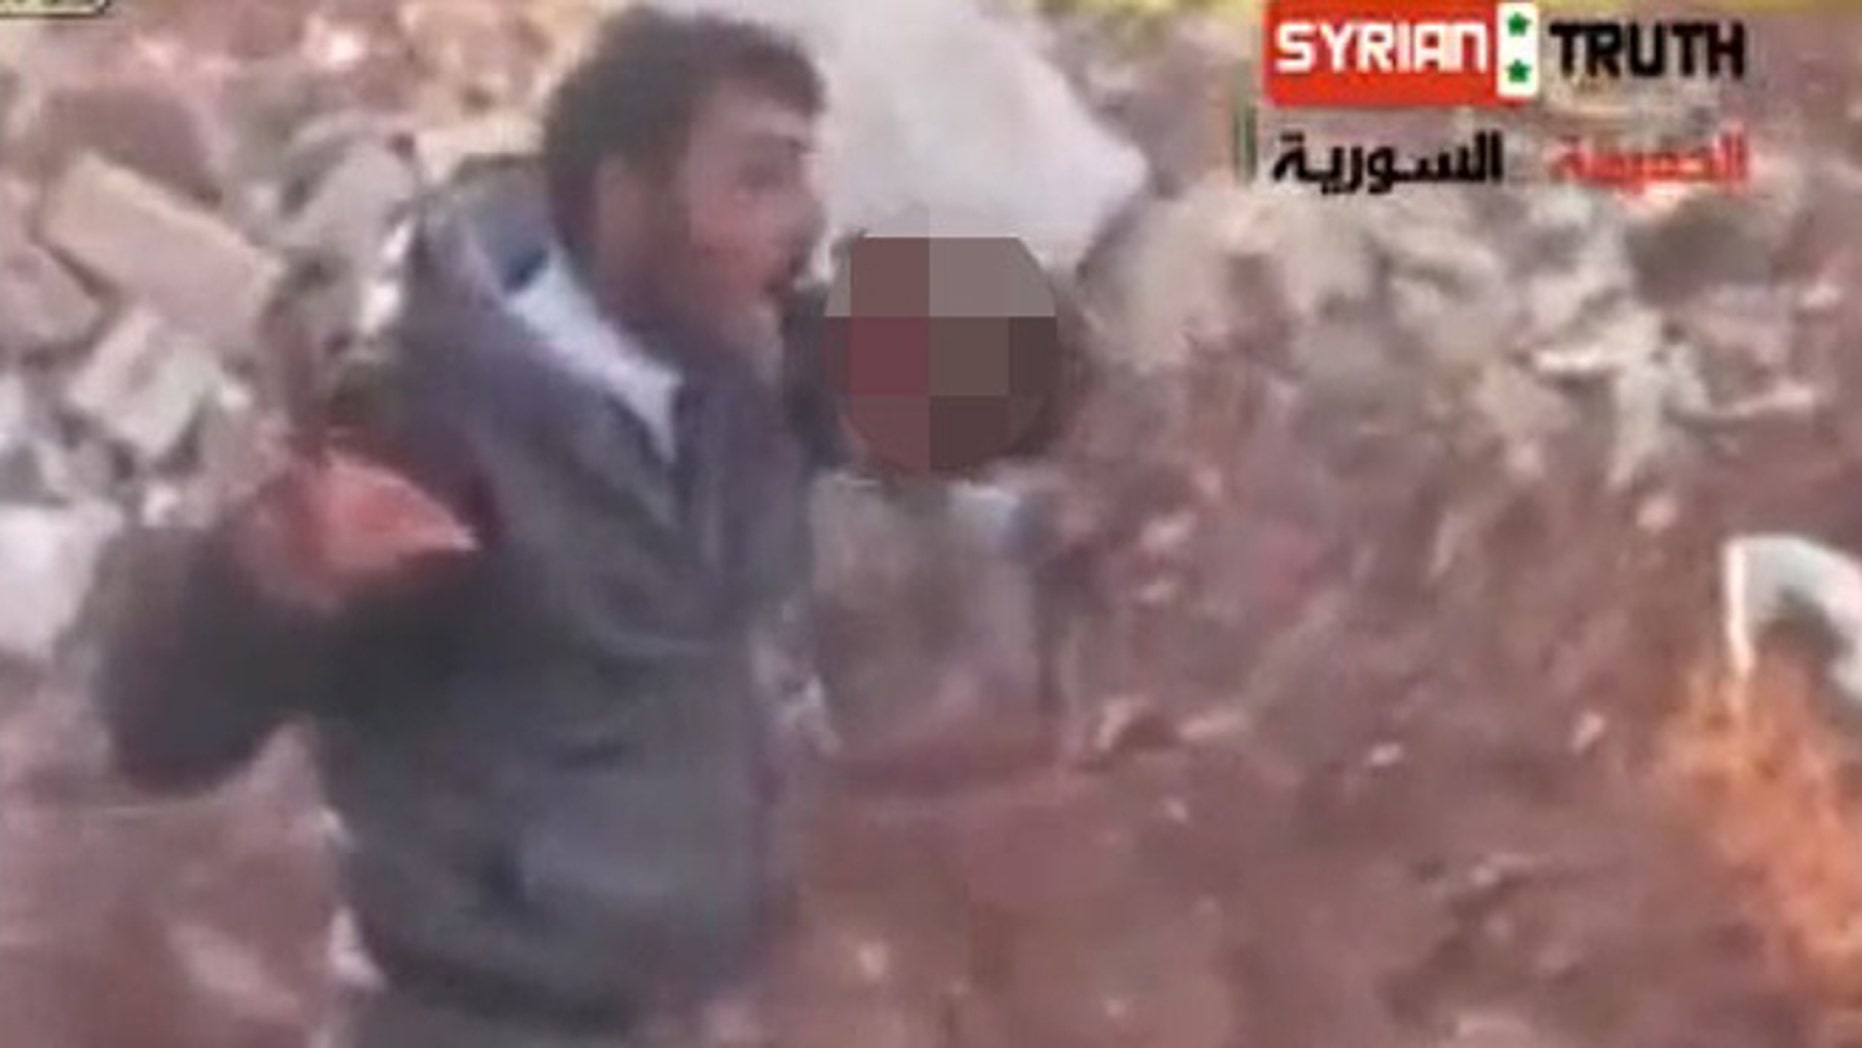 A newly surfaced video shows a Syrian Rebel leader eating what appears to be a human heart.